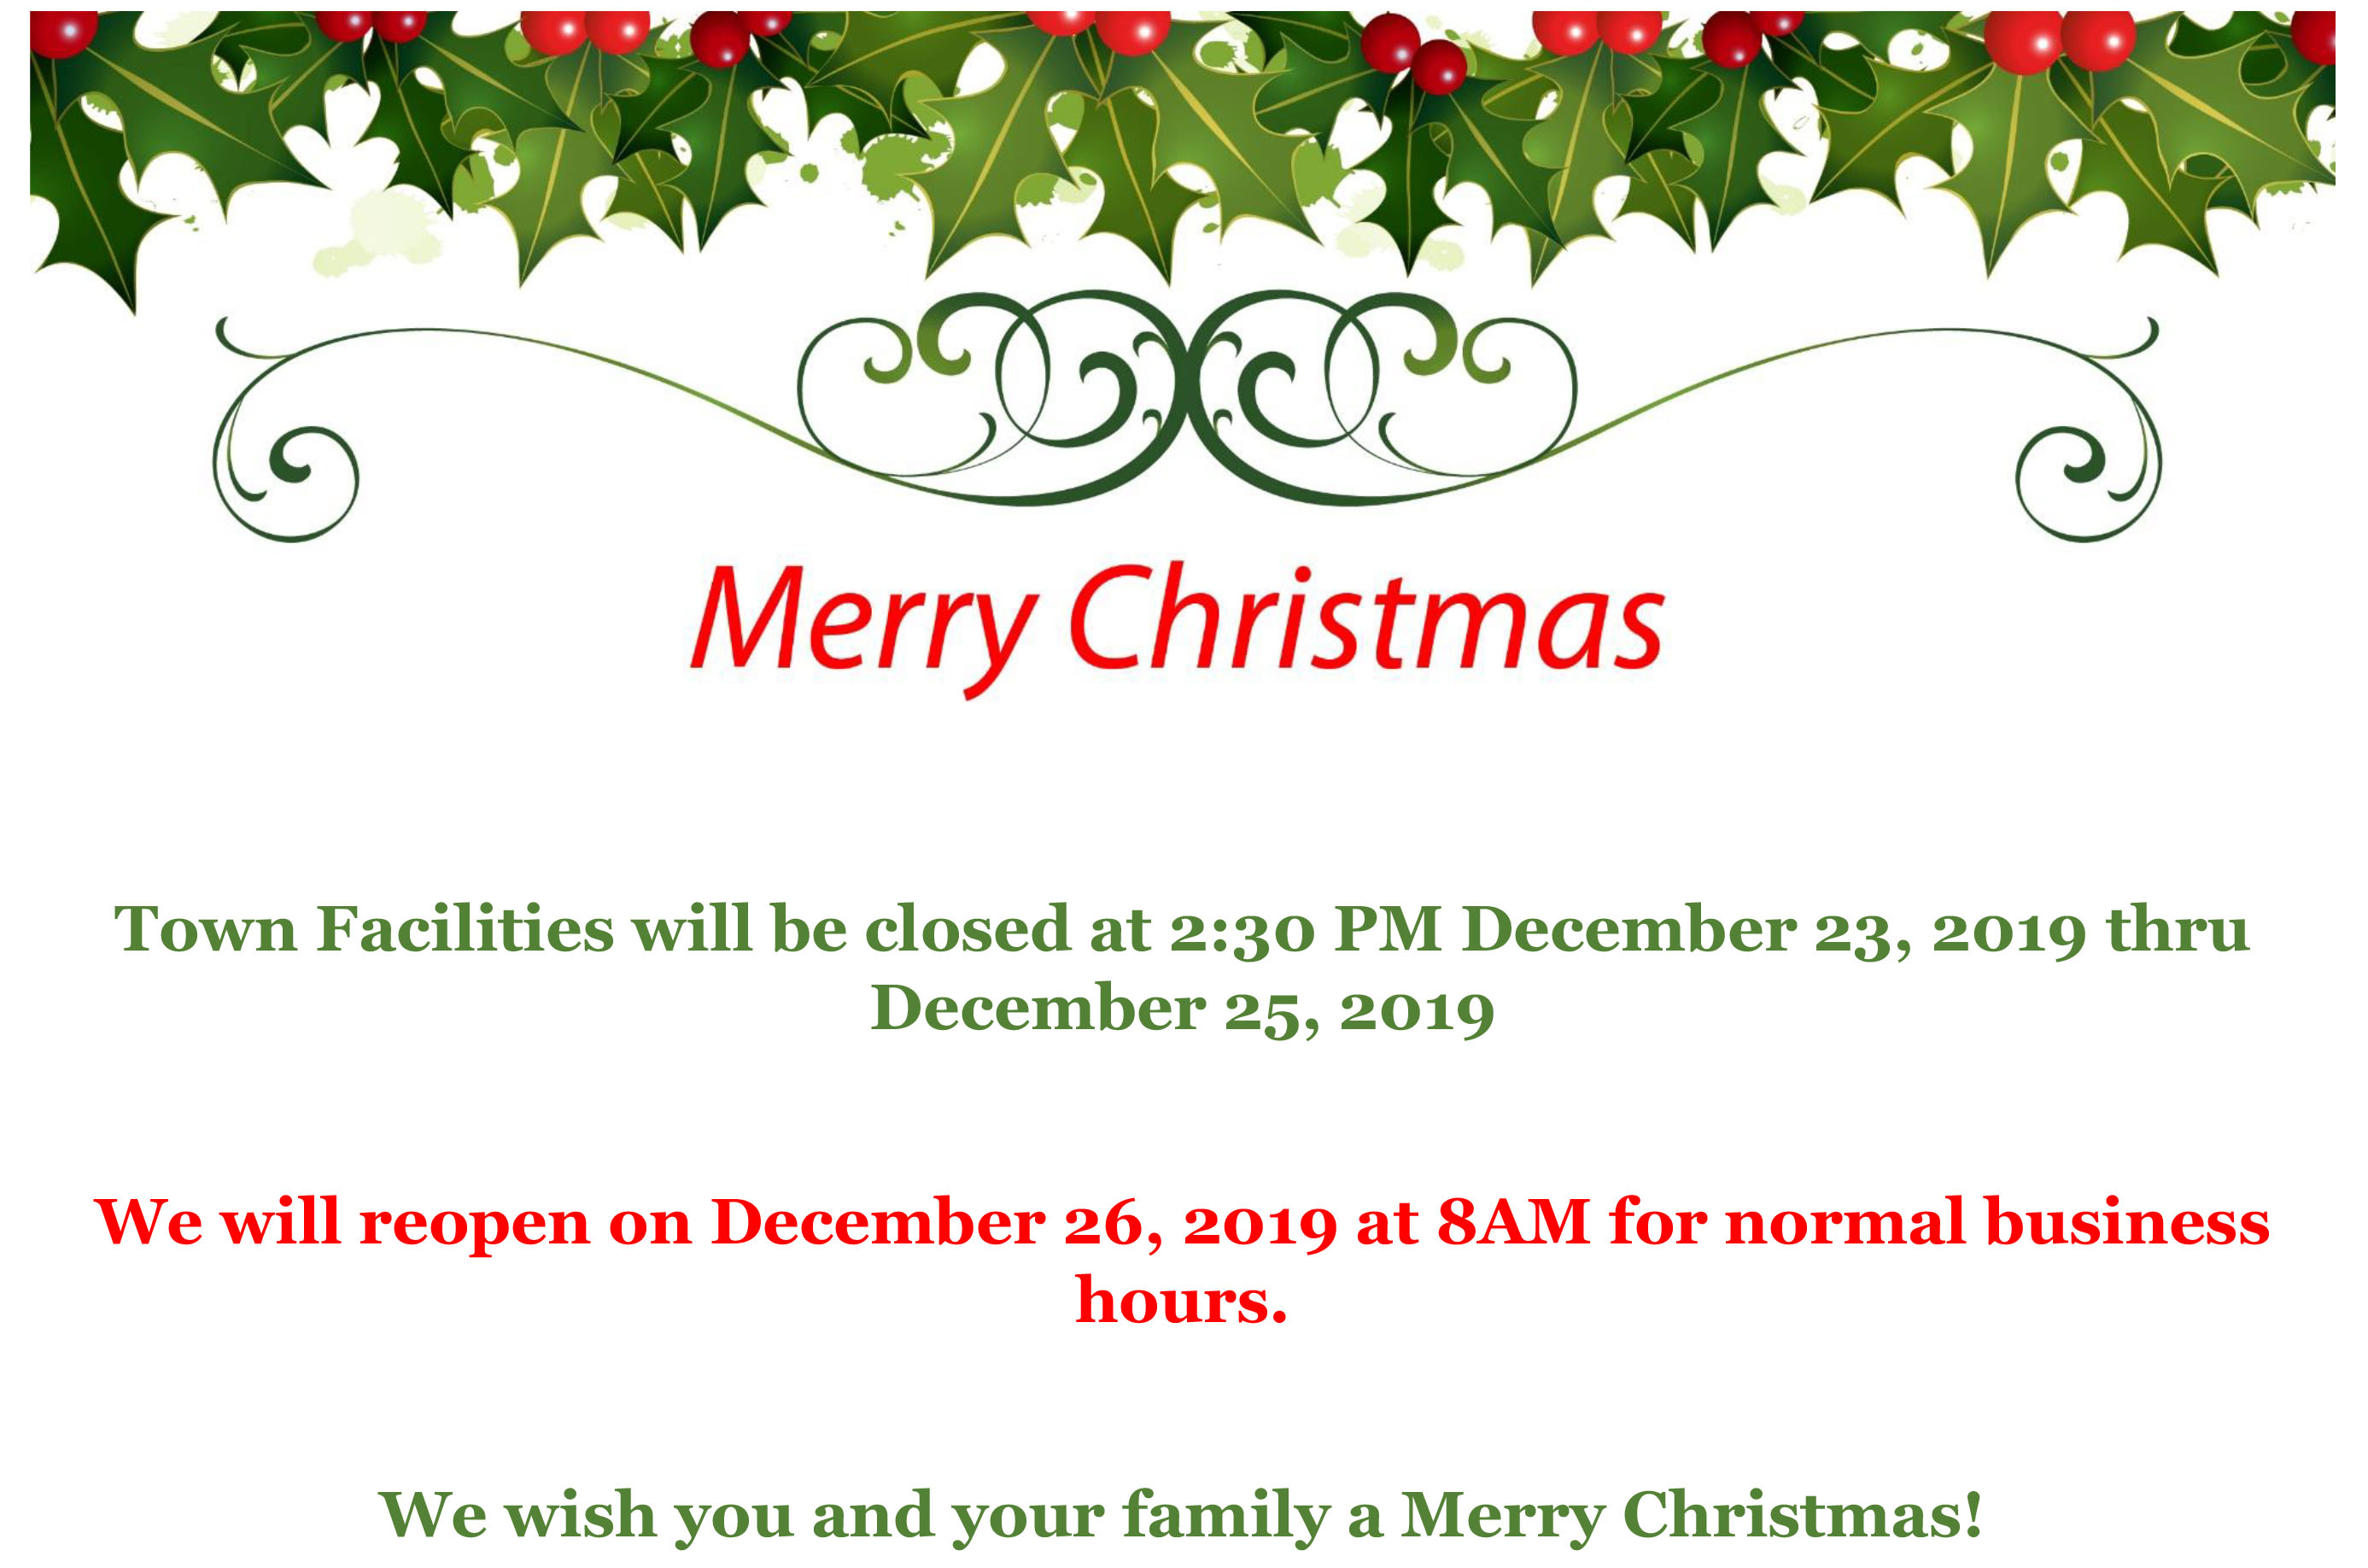 Town Hall and facilities will be closed at 2